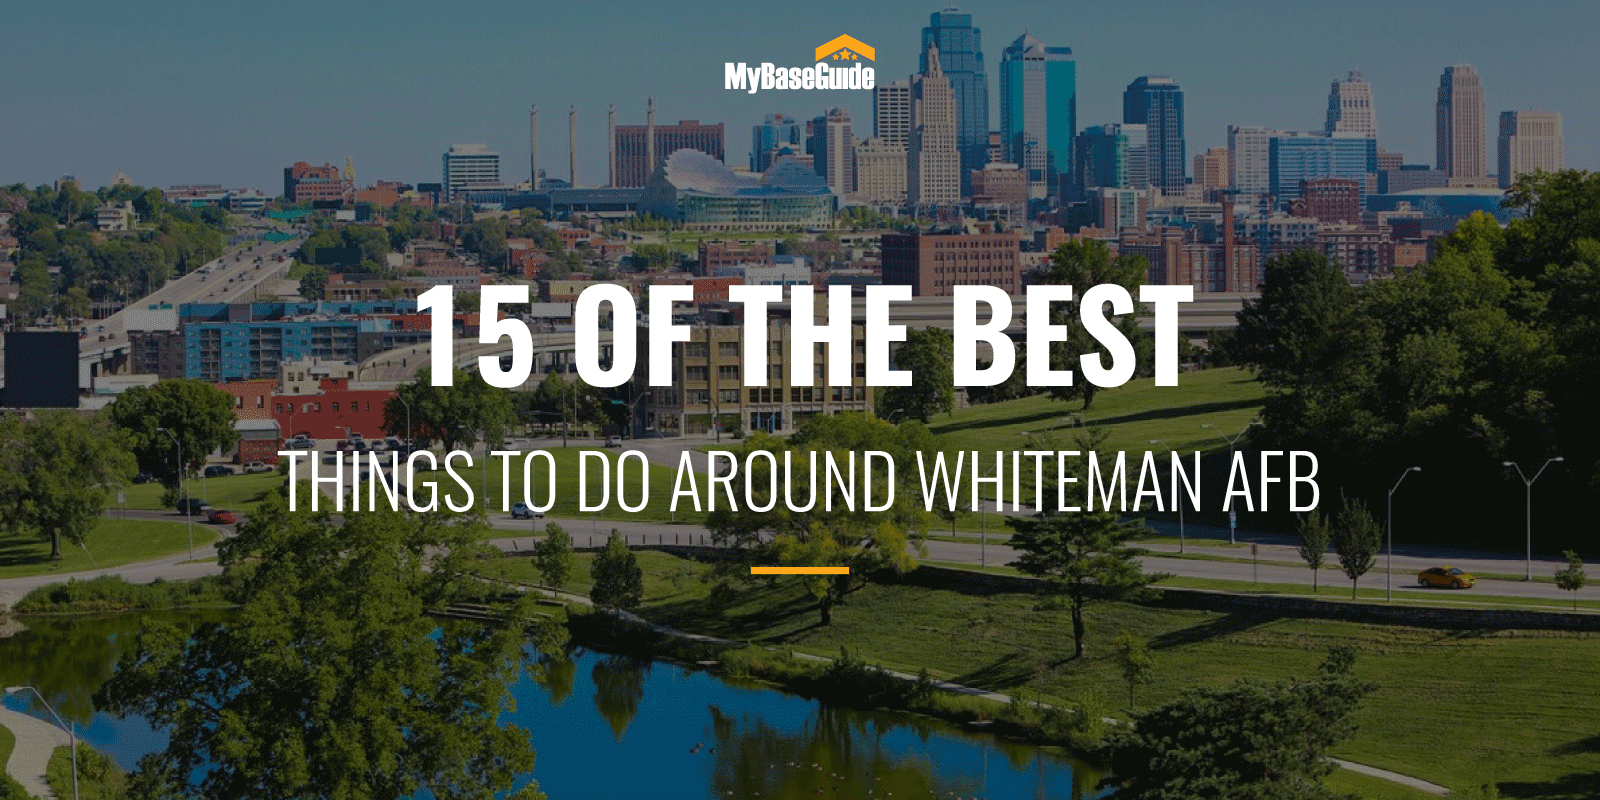 15 Of the Best Things to Do Around Whiteman AFB